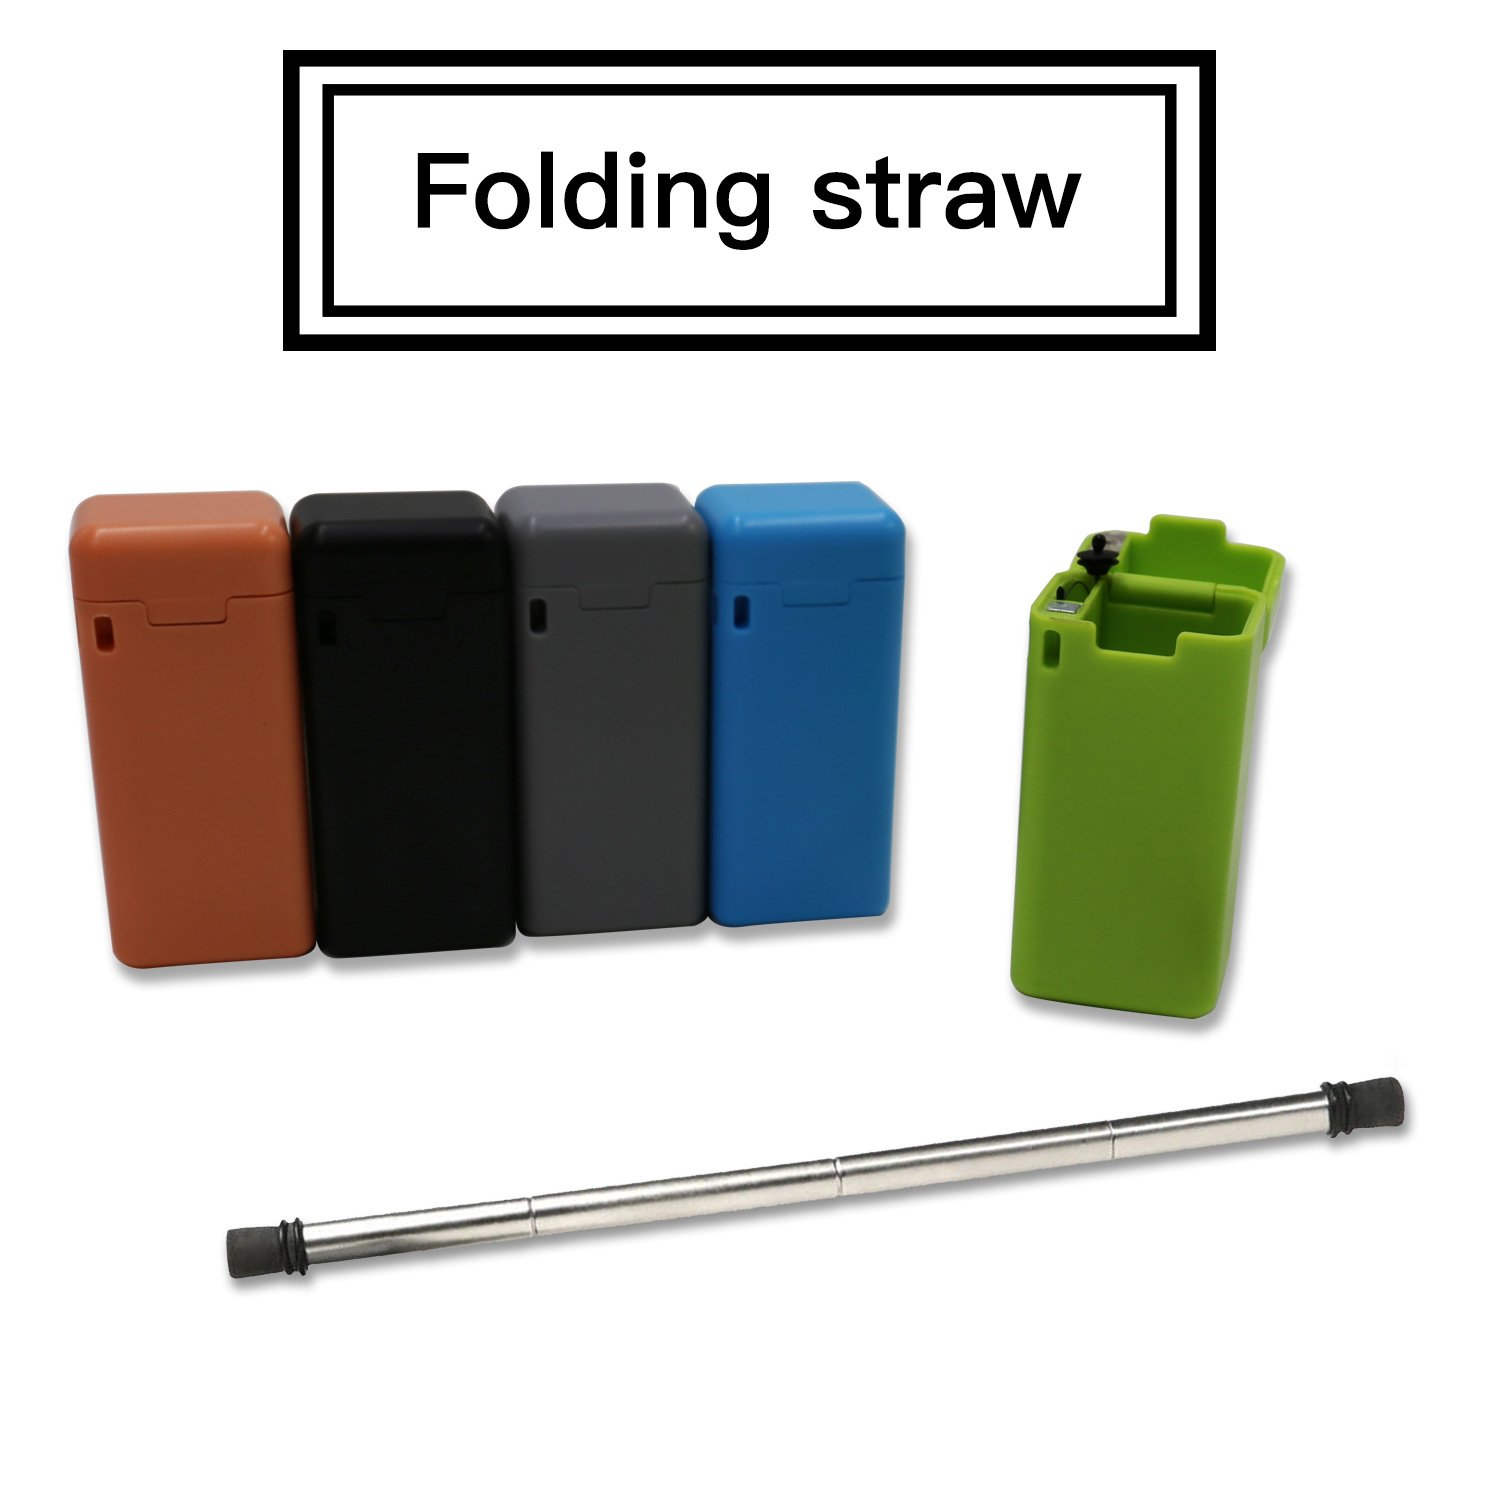 Folding Drinking Straw Stainless Steel,Final Collapsible Reusable Stainless Straw Medical-Grade Food-Grade Drinking Straws Portable with Hard Case Cleaning Brush